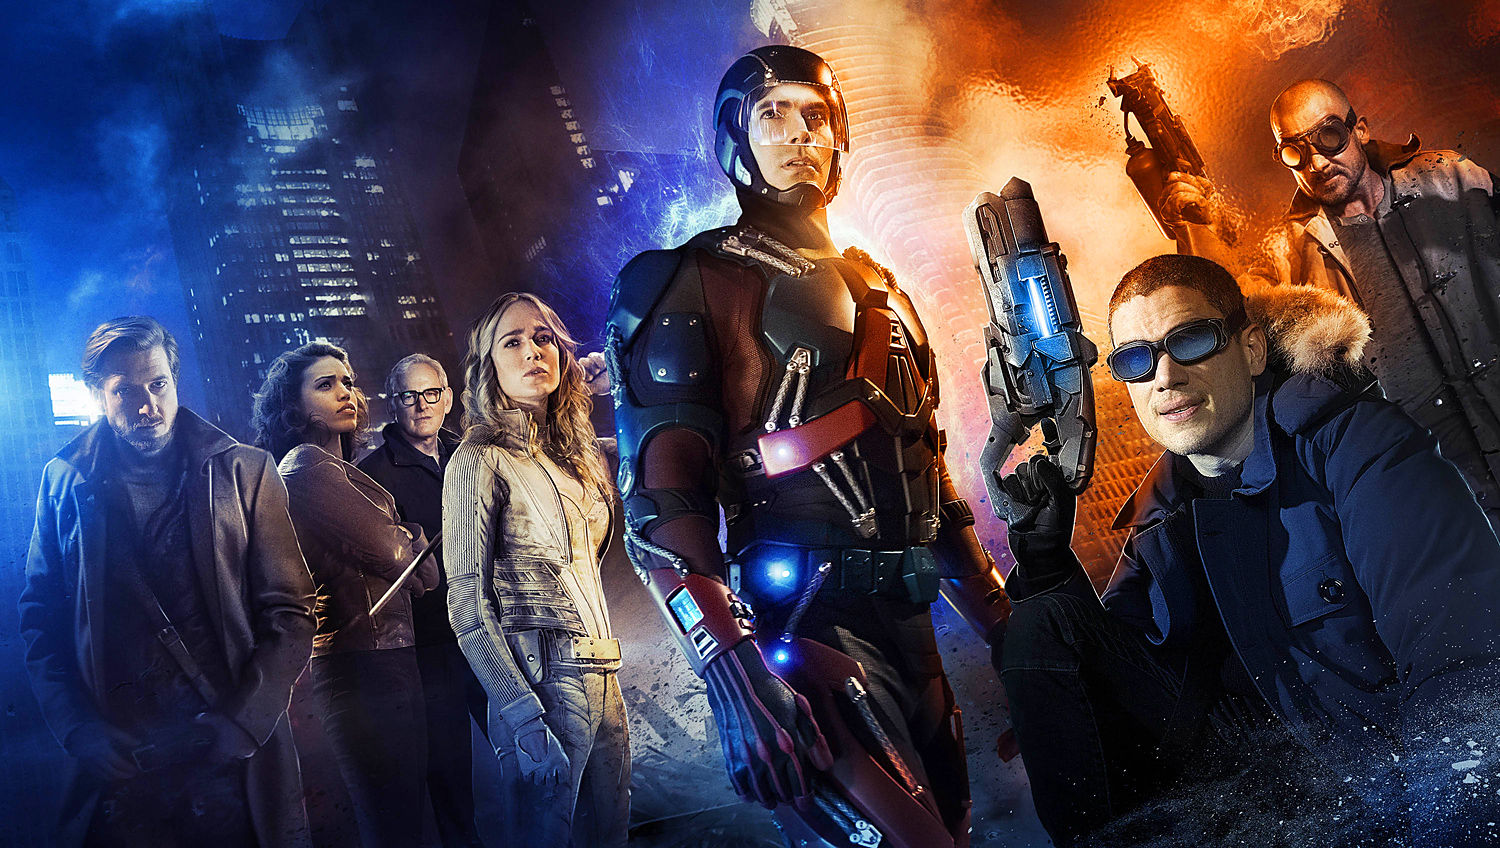 http://screenrant.com/wp-content/uploads/Legends-of-Tomorrow-Promo-Image-DC-CW-2016.jpg